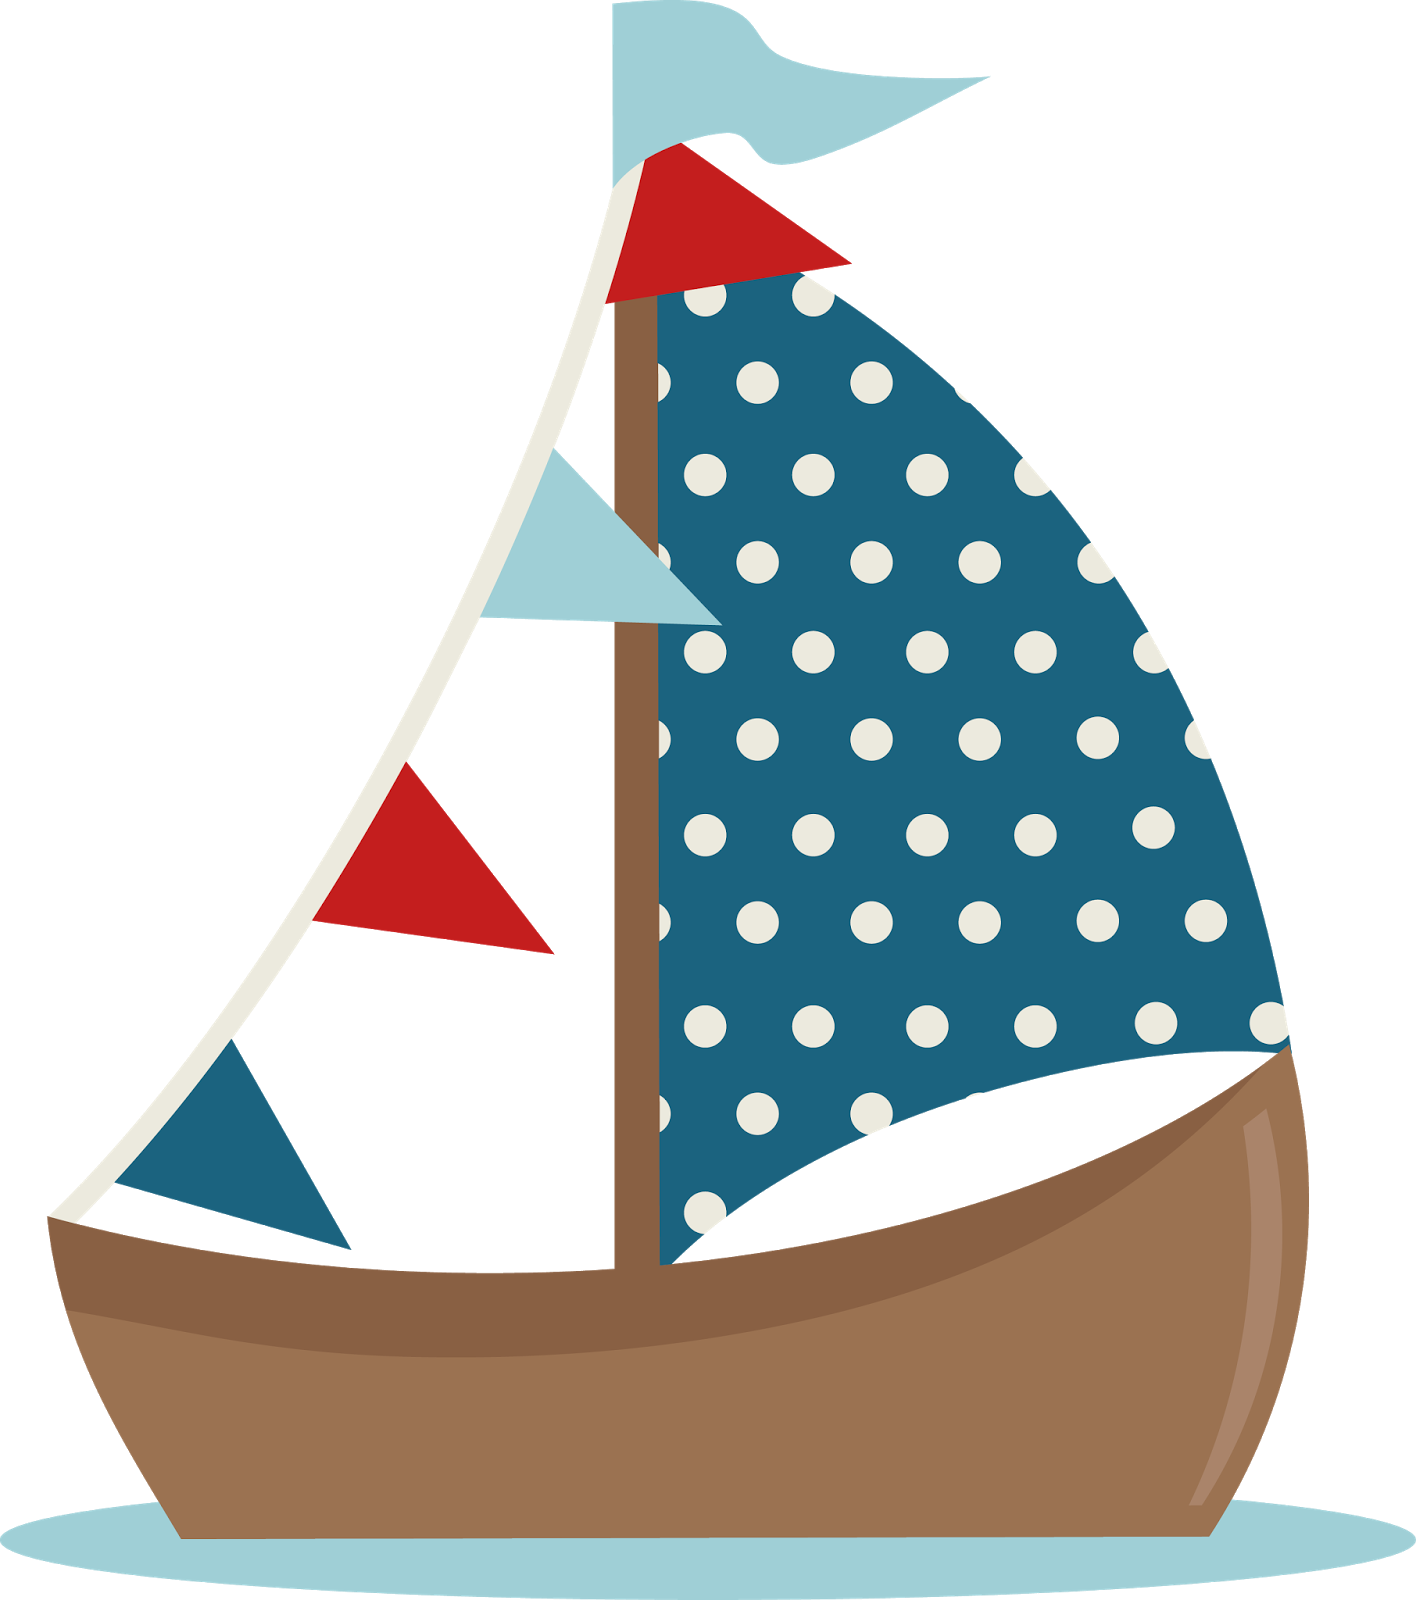 Sailing Boat clipart family boating Free and Pictures boats Clipart